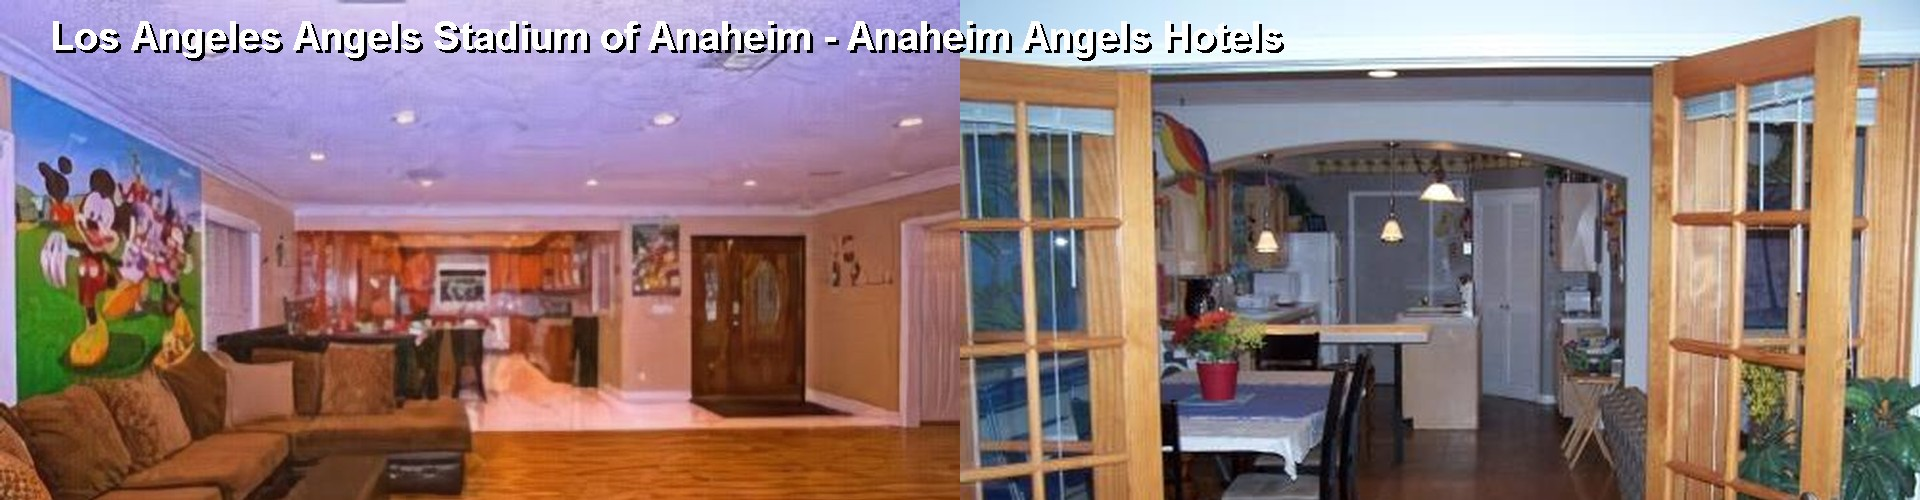 5 Best Hotels Near Los Angeles Angels Stadium Of Anaheim